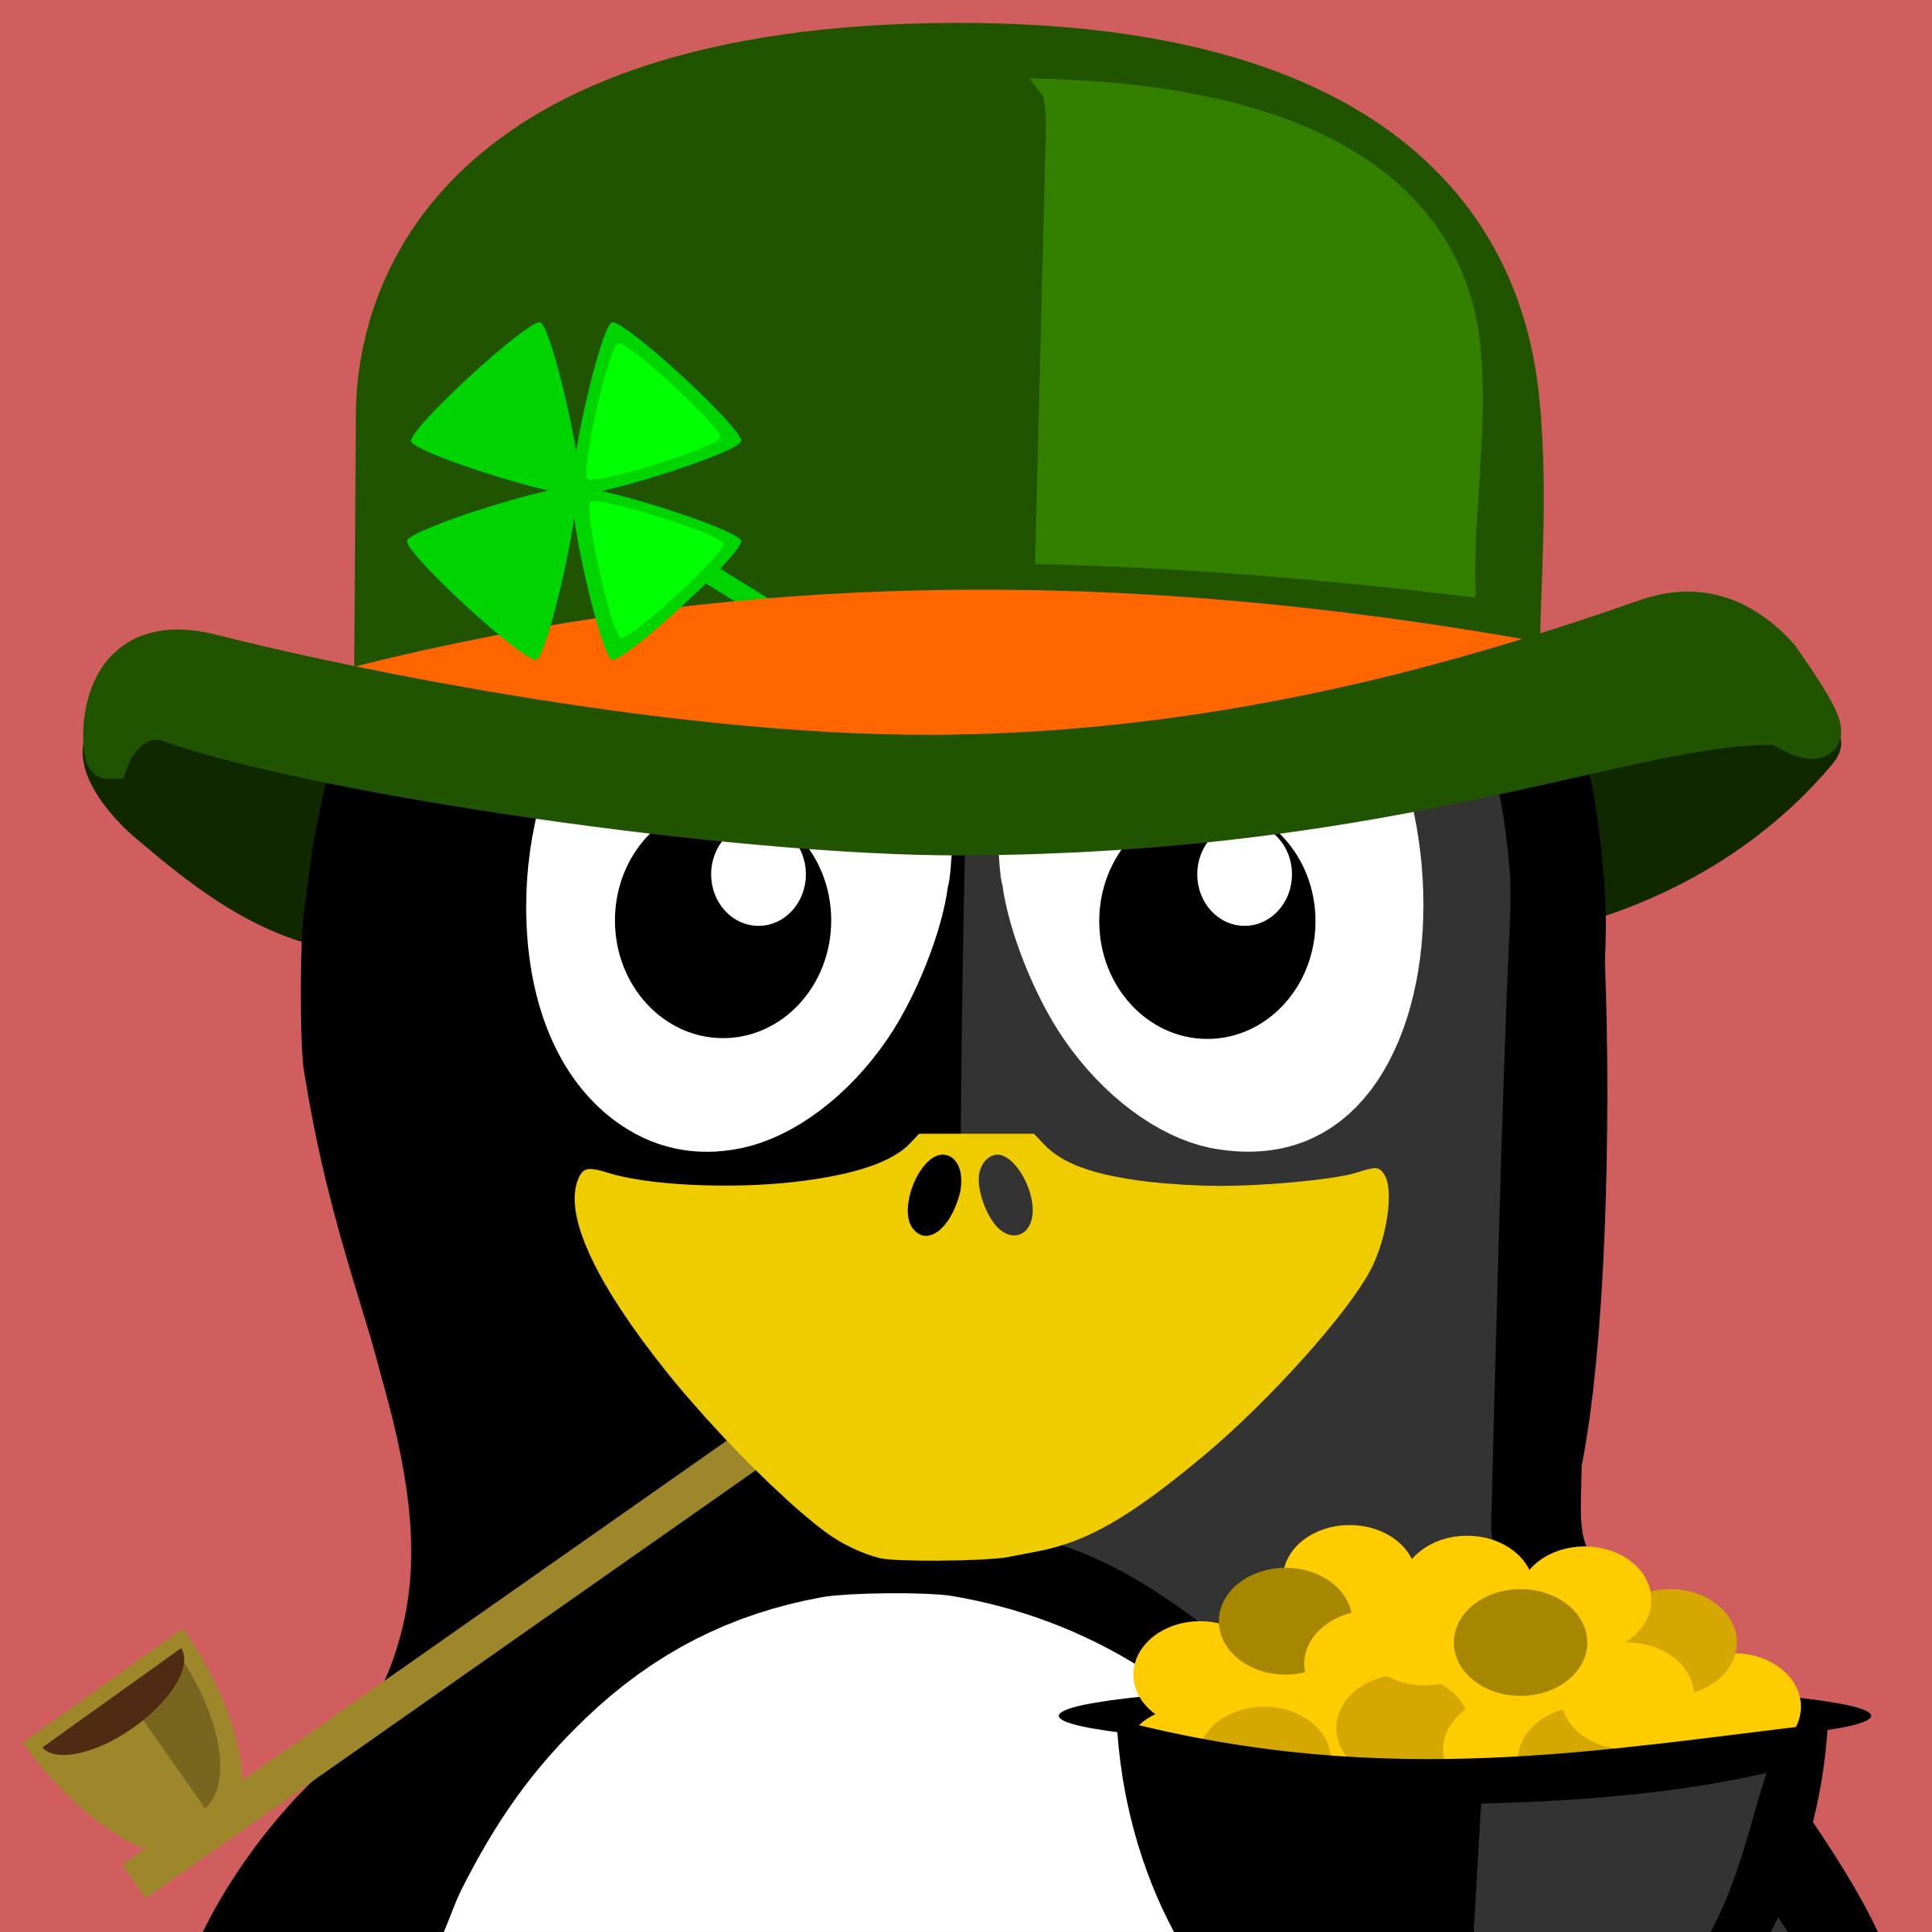 Irish Penguin by BartM